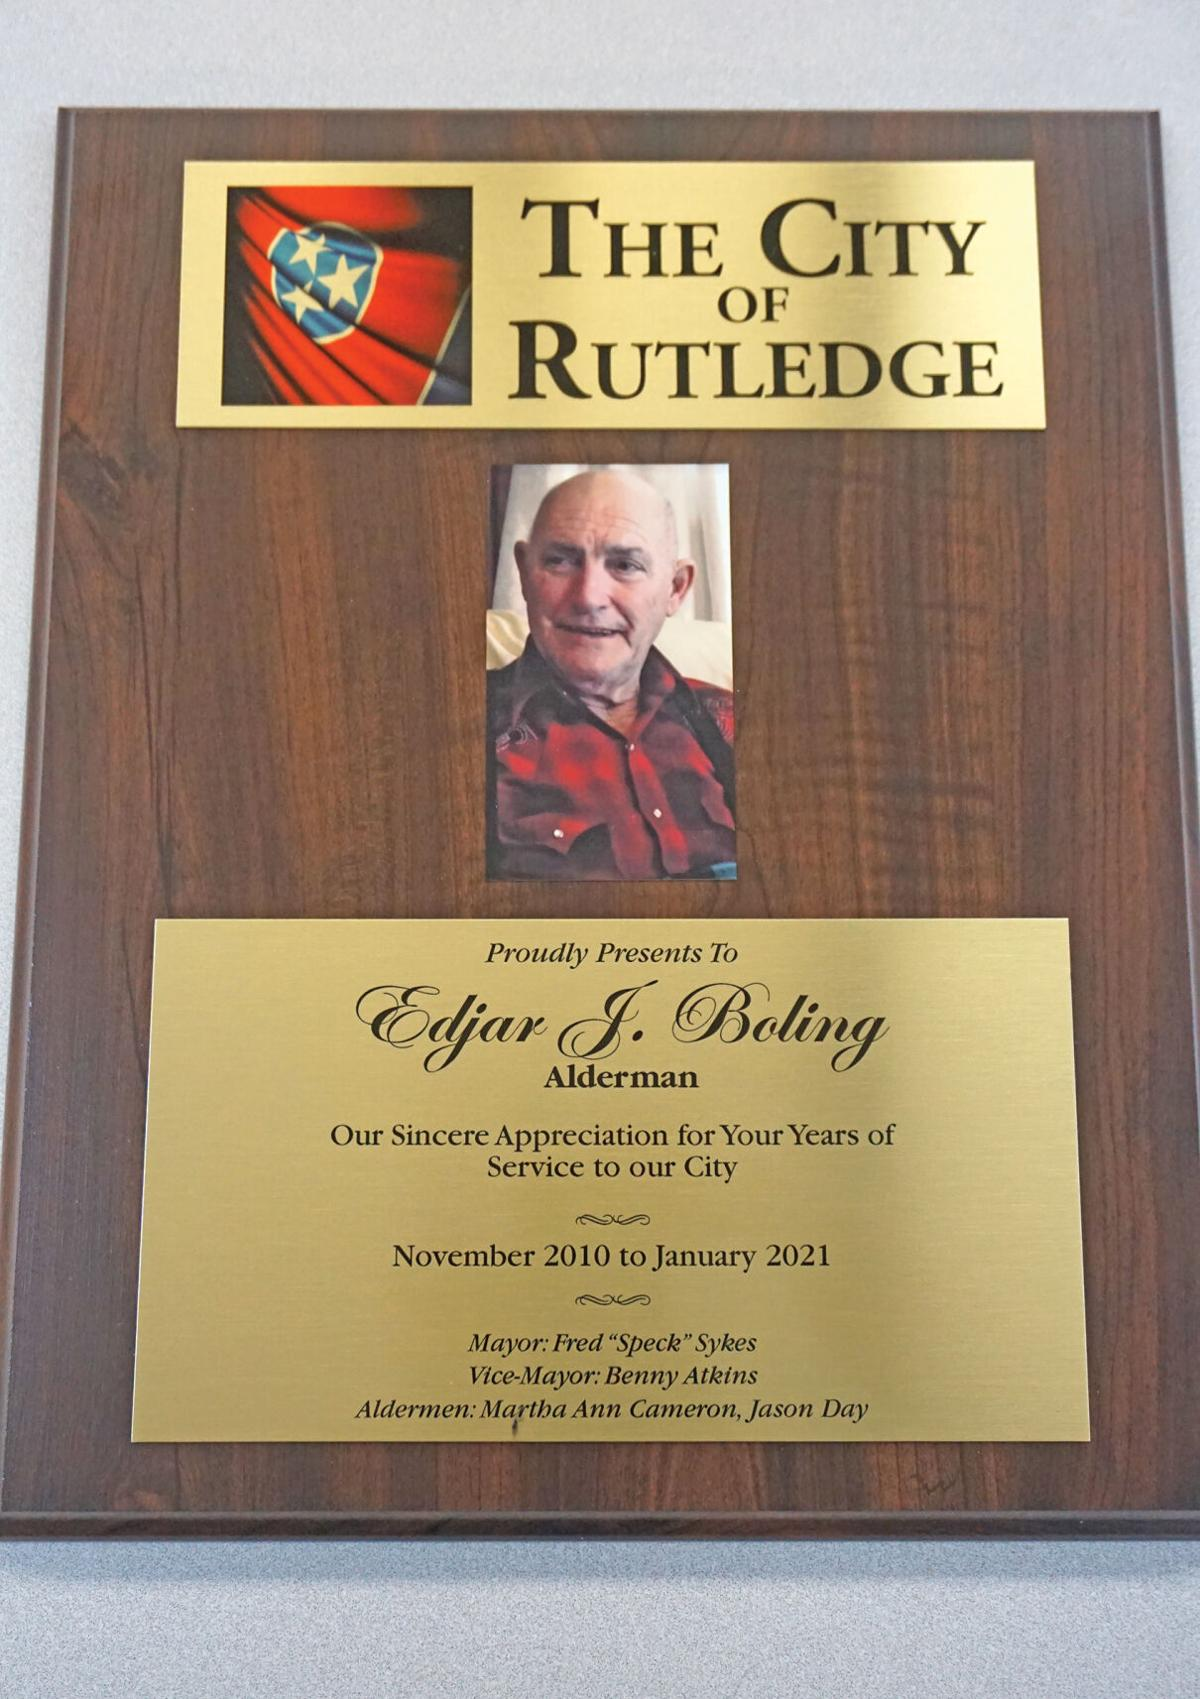 Rutledge BMA selects alderman, presents plaque